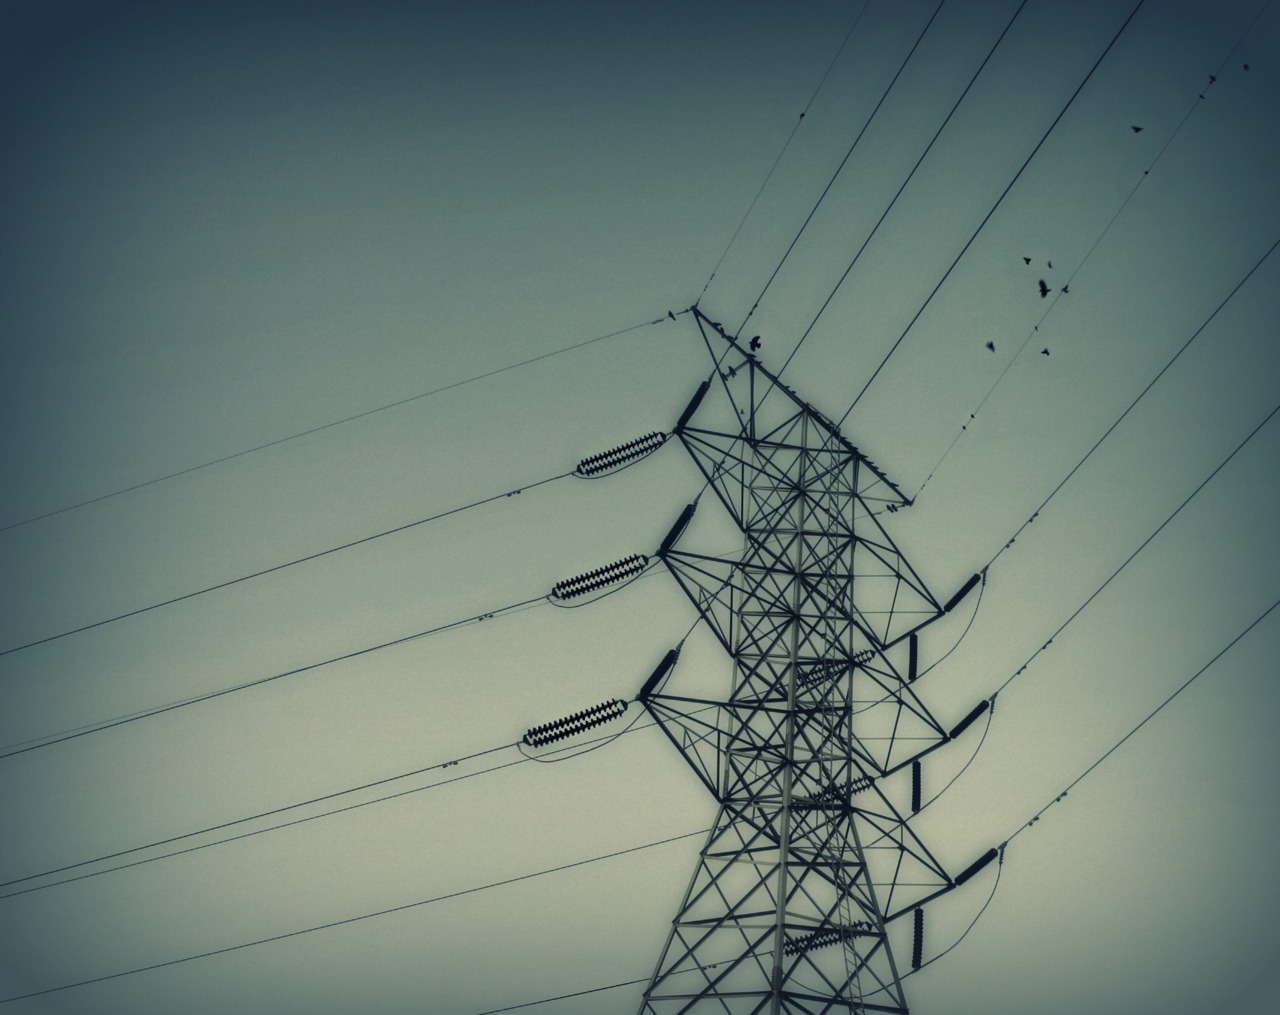 jillallynstafford: you're electric, out of sight. instant pylon reblog